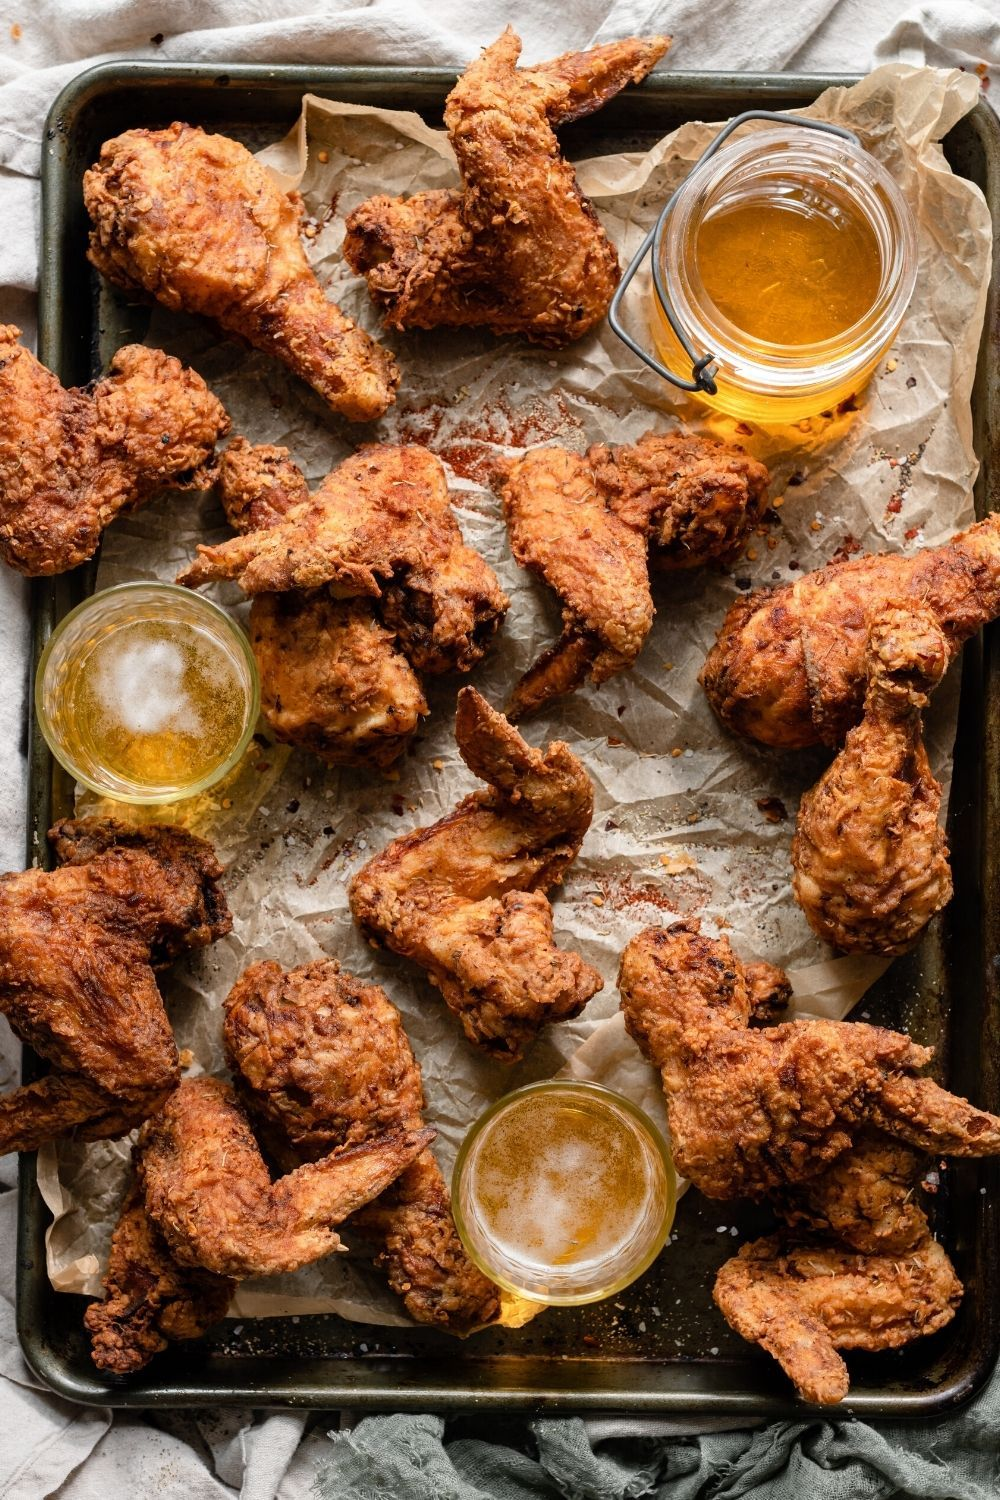 Spicy Fried Chicken Two Cups Flour Recipe In 2020 Fried Chicken Spicy Fried Chicken Chicken Recipes